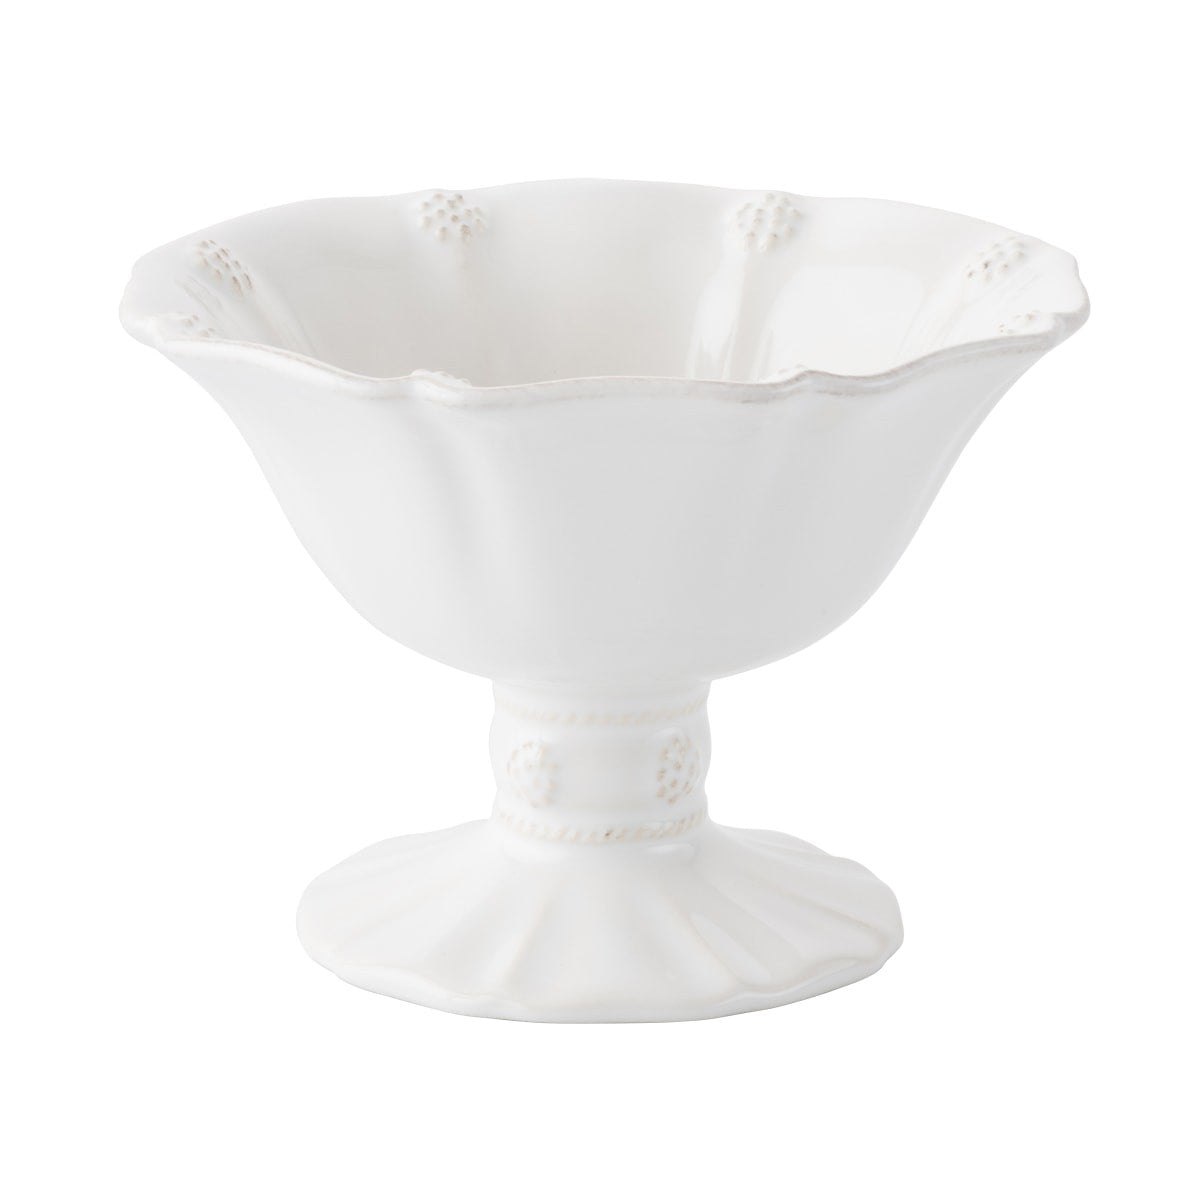 "Juliska - Berry & Thread Whitewash 5.5"" Footed Compote"